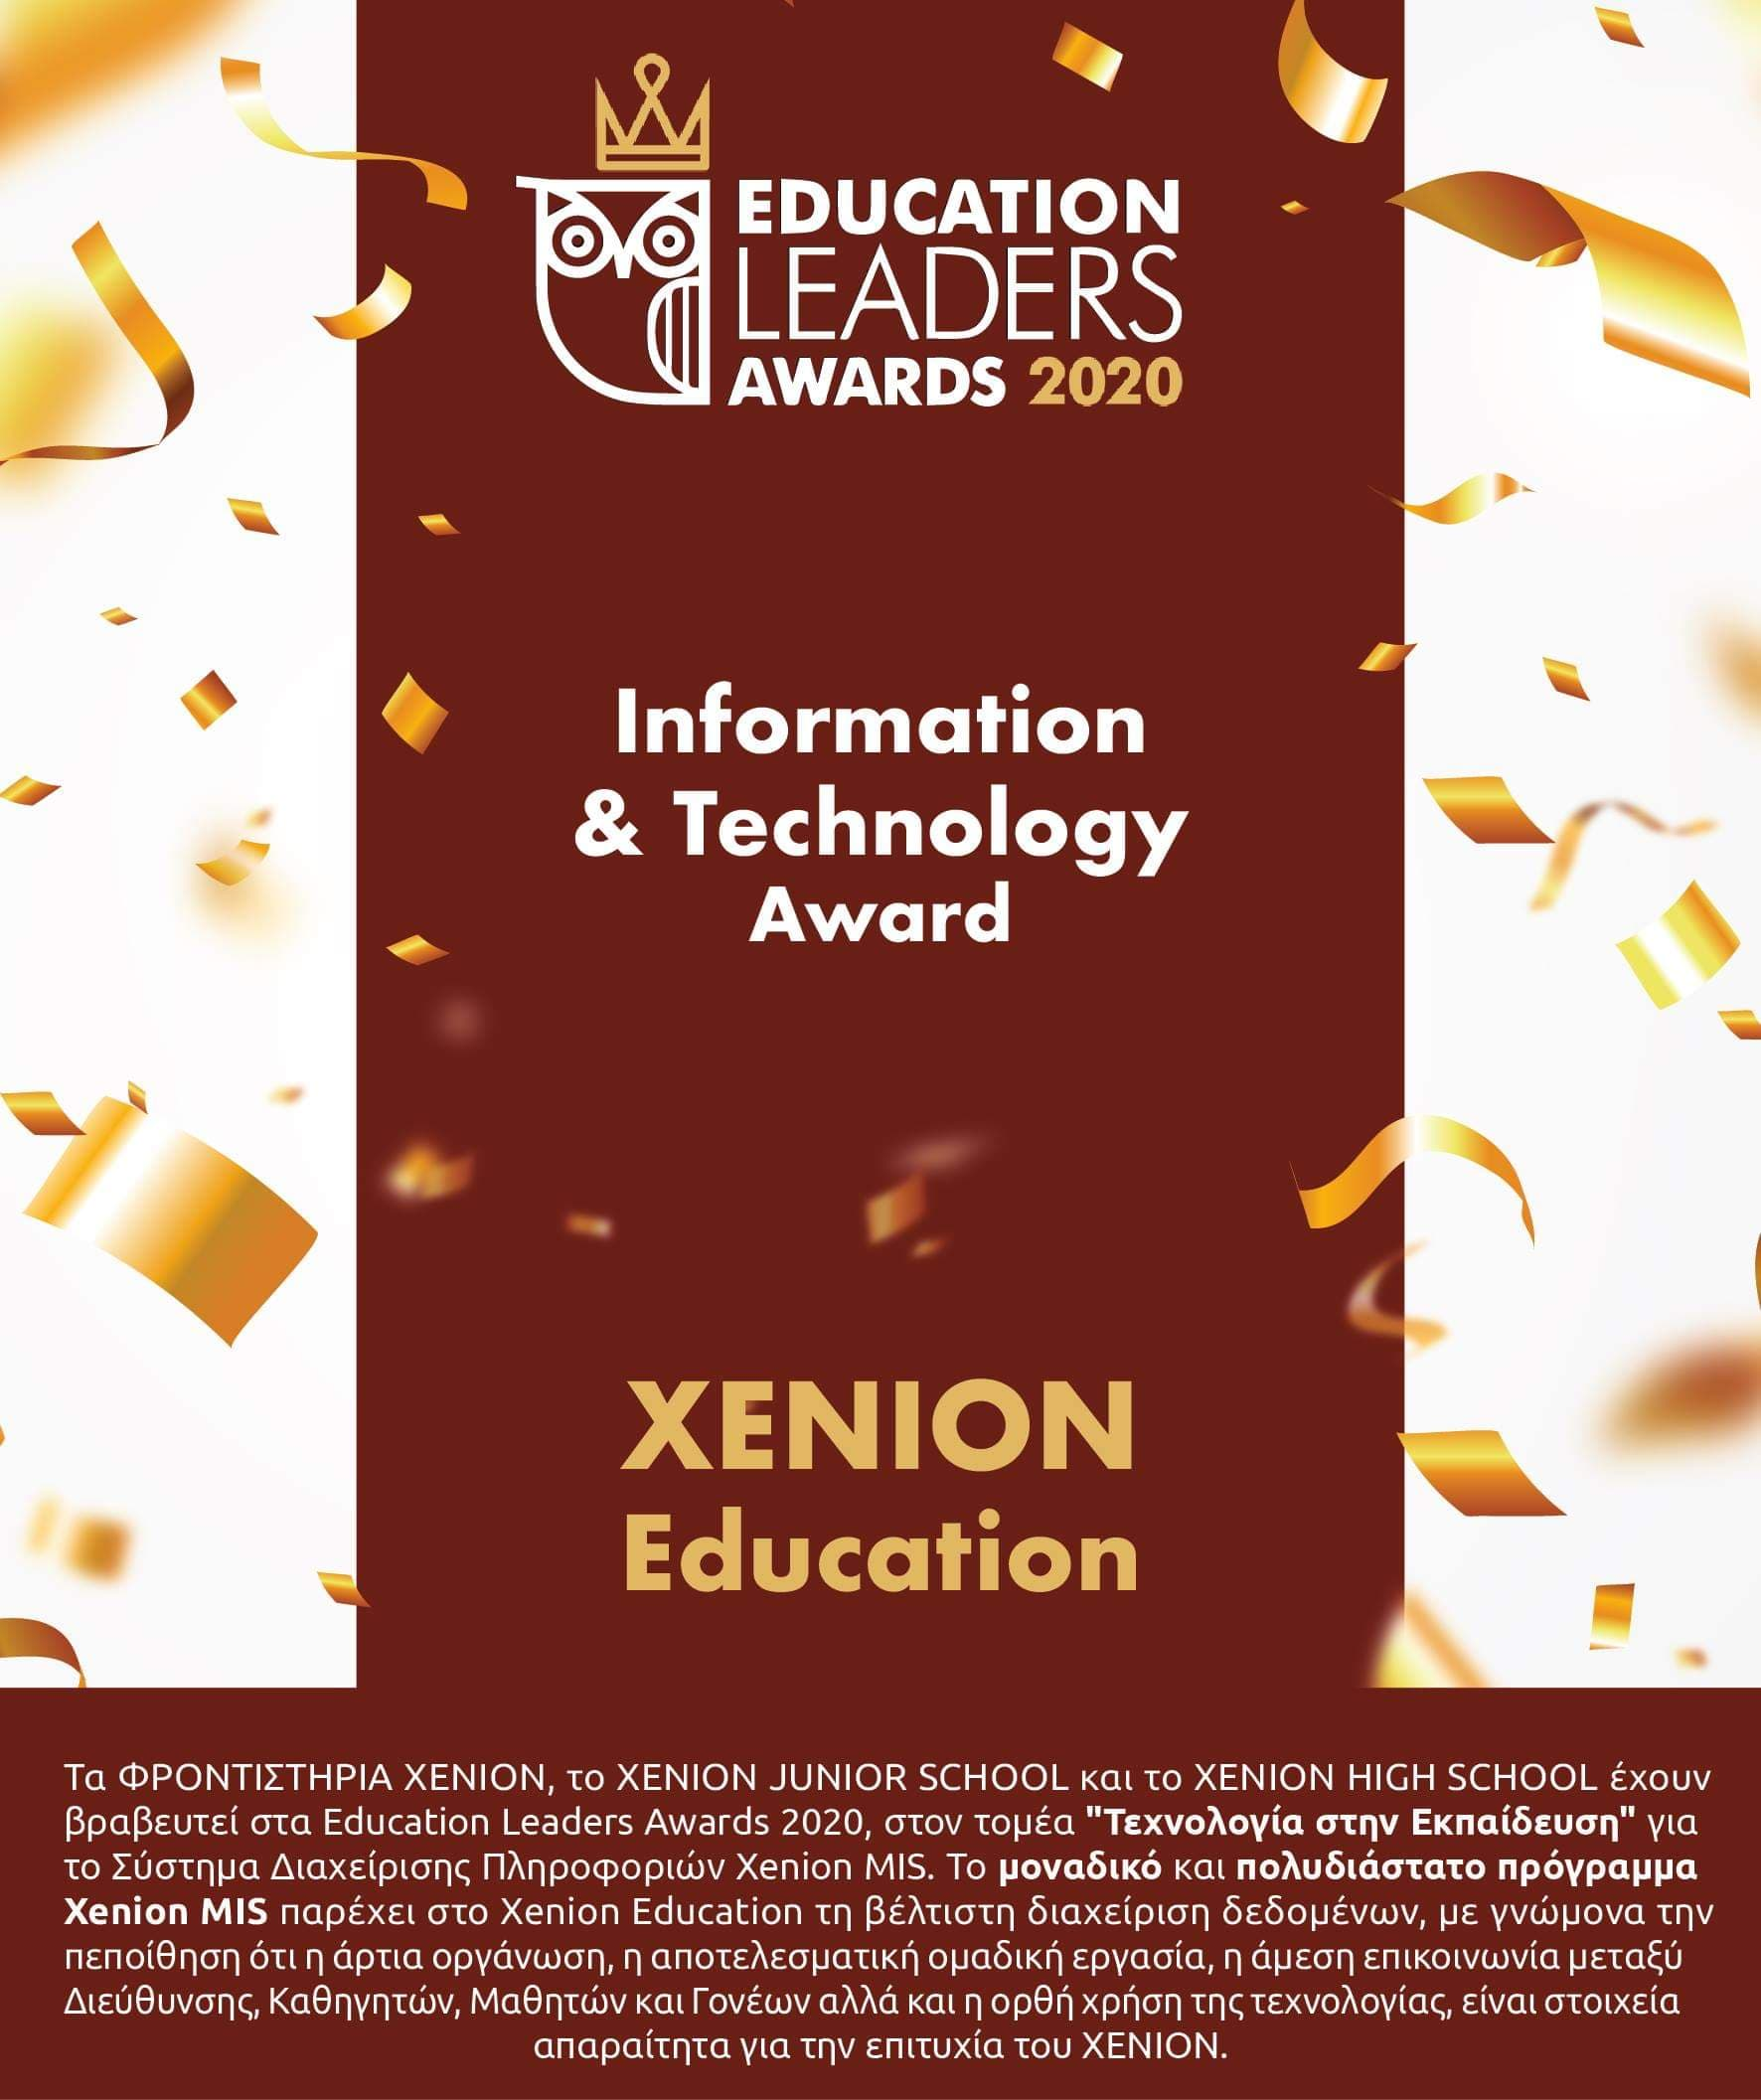 CYPRUS EDUCATION LEADERS AWARDS (GR)